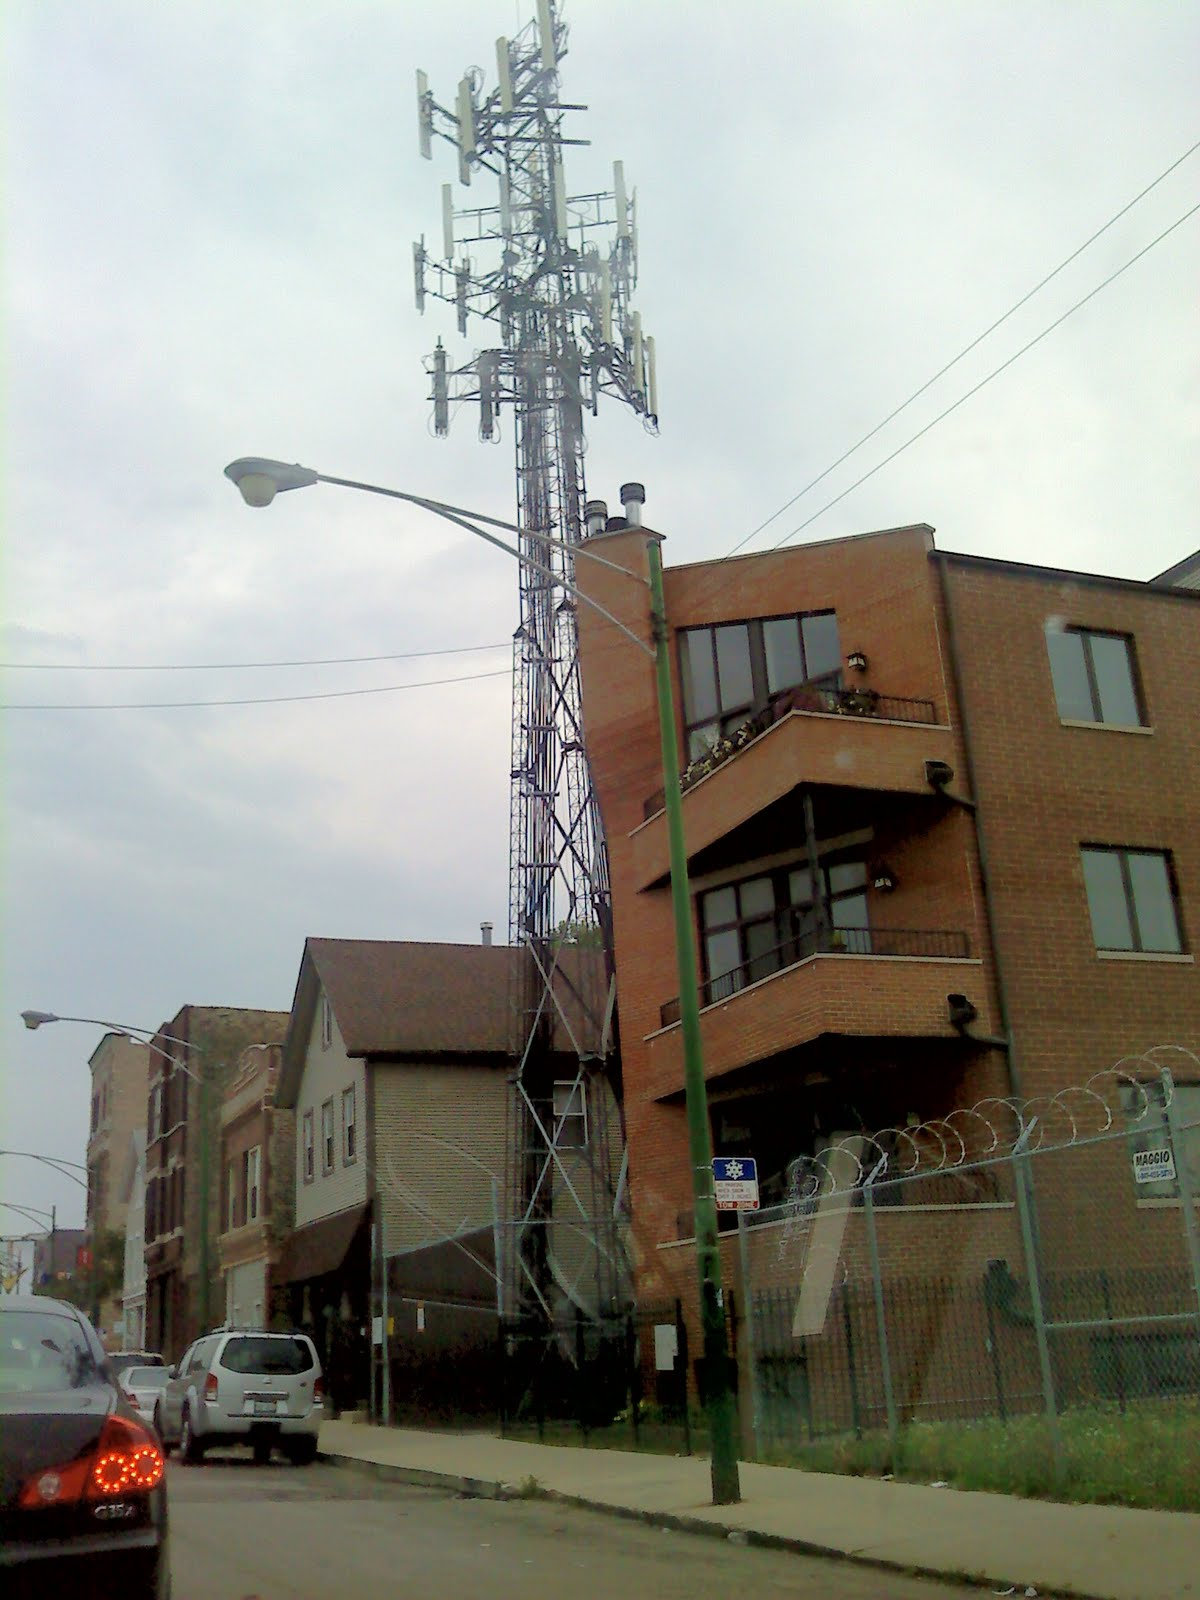 http://2.bp.blogspot.com/_yet7je3te0c/TGlqReWxxRI/AAAAAAAAAtY/M_dMnW6vCUI/s1600/Building+with+Cell+Tower+3.jpg